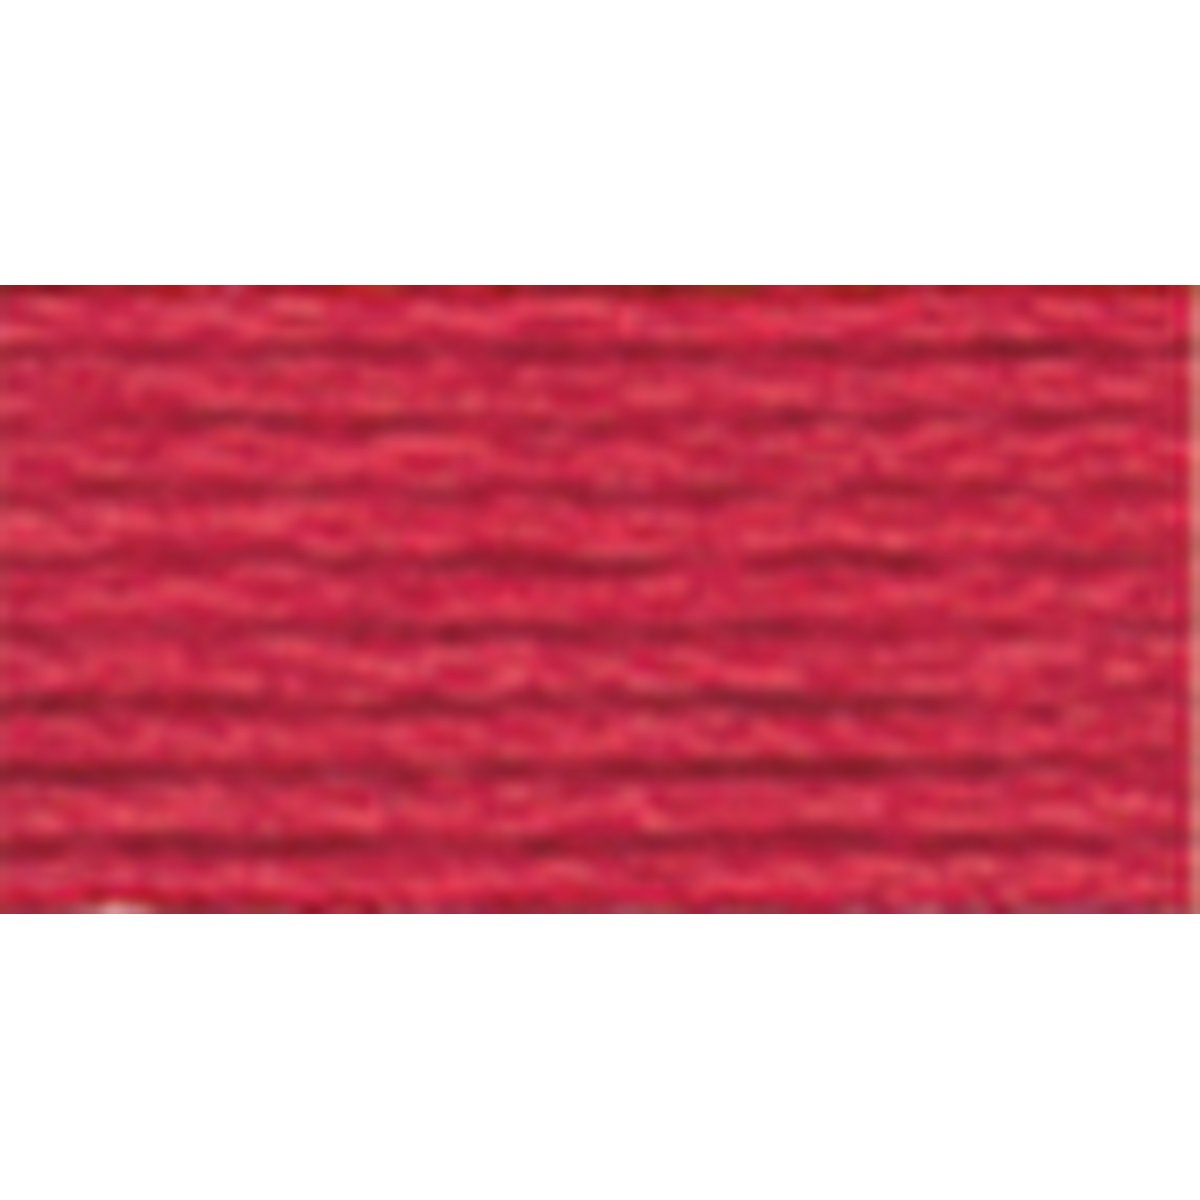 DMC 117-347 Mouline Stranded Cotton Six Strand Embroidery Floss Thread, Dark Salmon, 8.7-Yard Notions - In Network